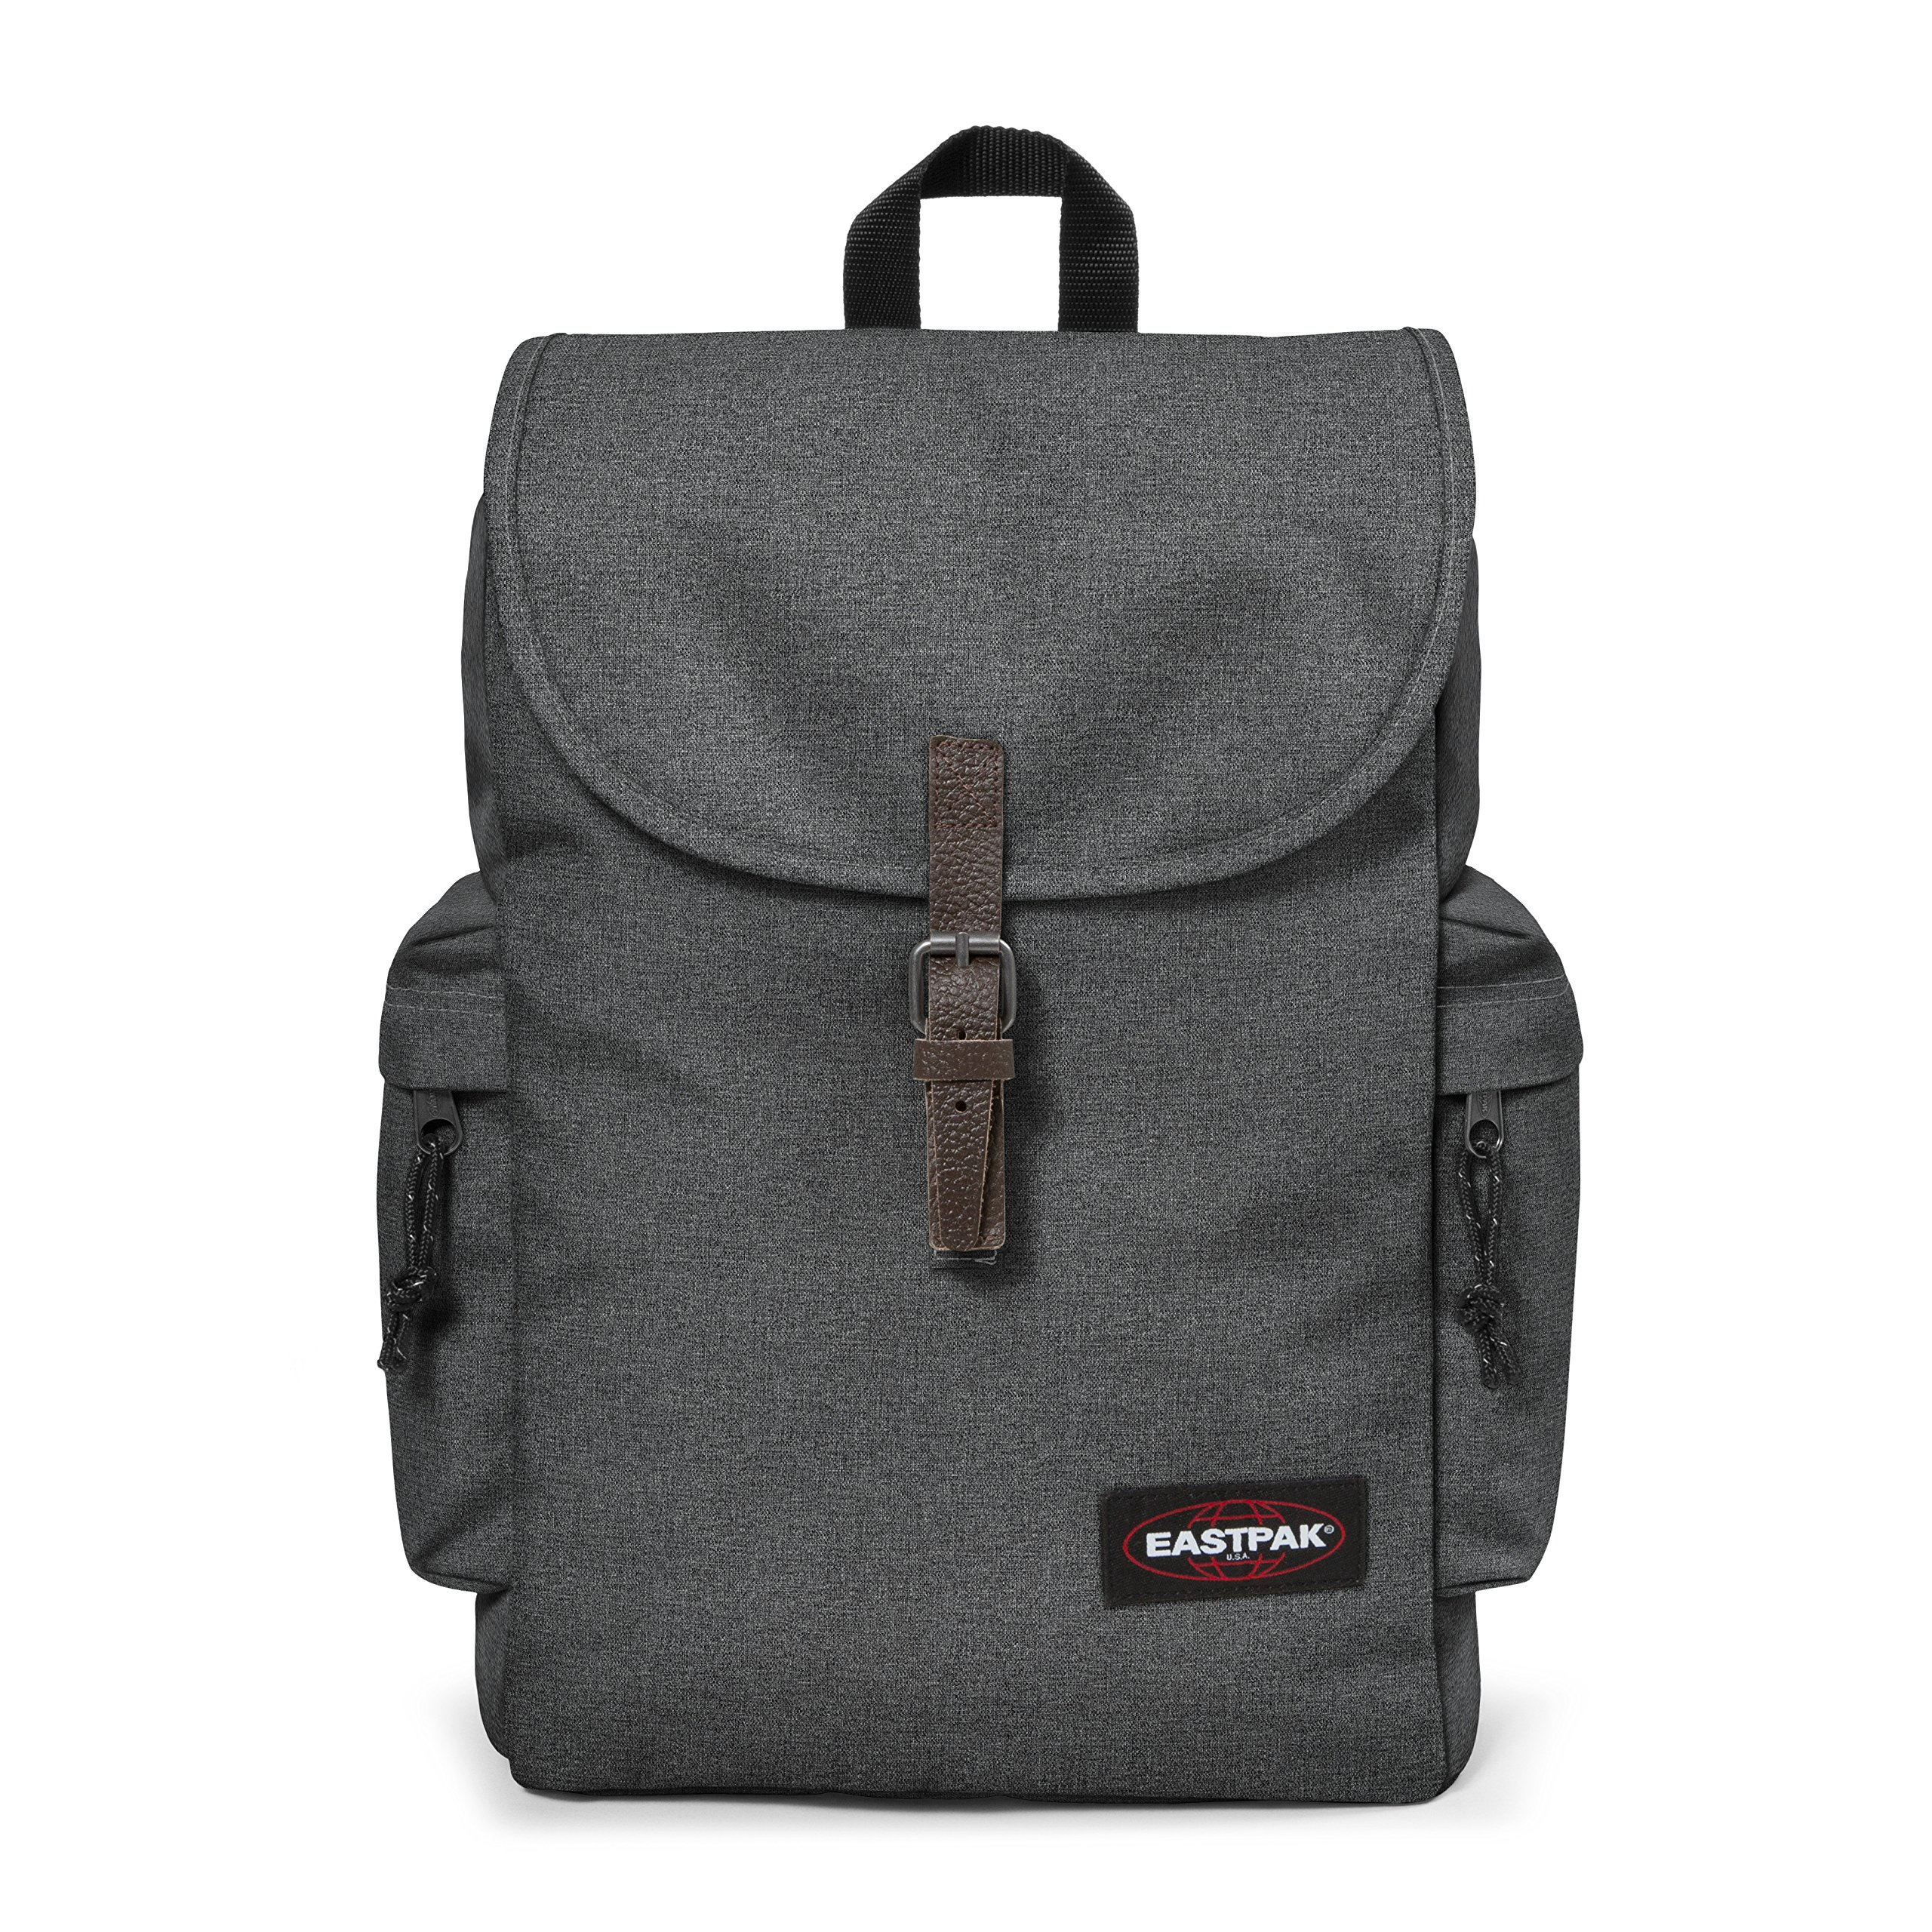 ca2653ccd9 Eastpak Austin, Zaino Casual Unisex, Grigio (Black Denim), 18 liters,